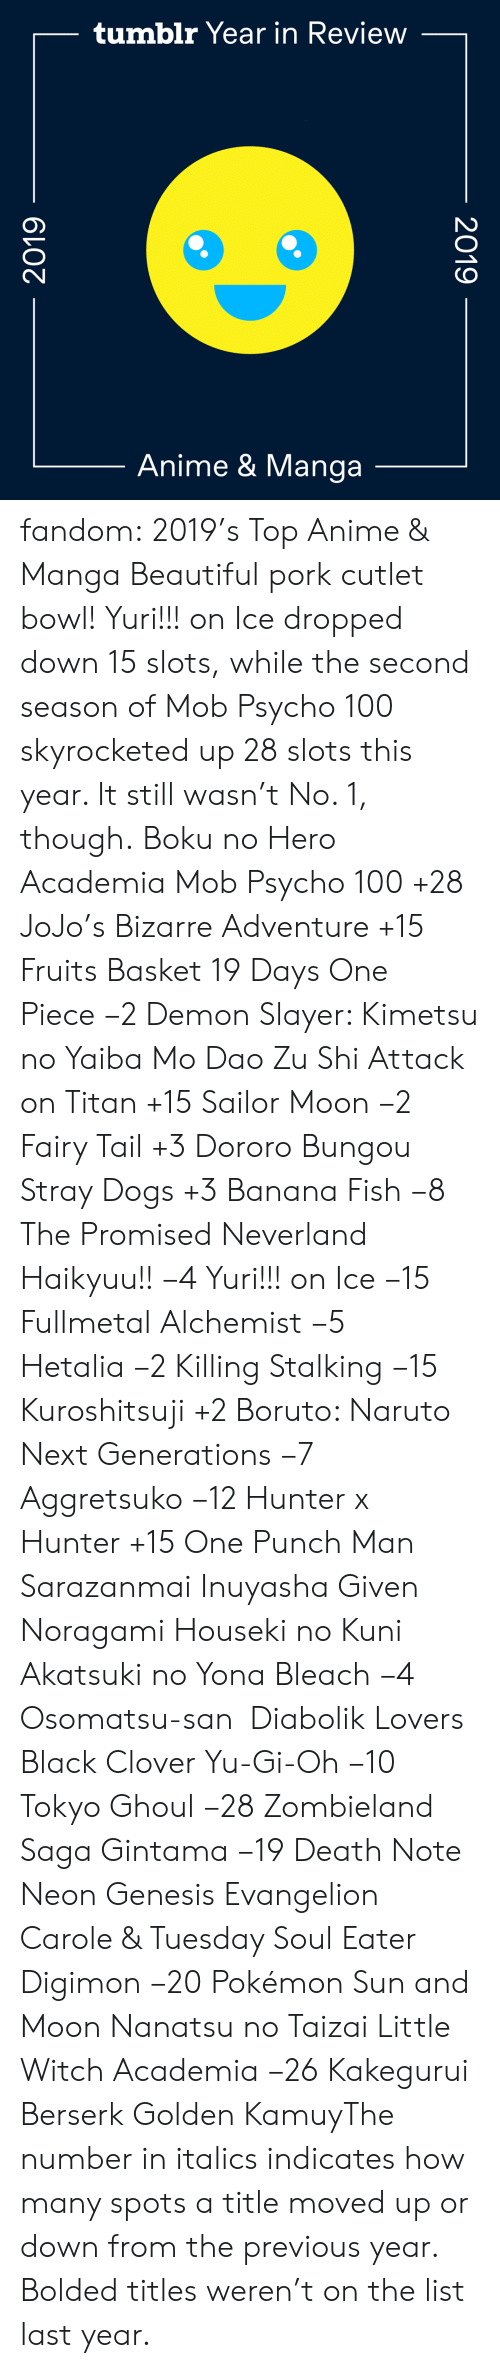 tuesday: tumblr Year in Review  Anime & Manga  2019  2019 fandom:  2019's Top Anime & Manga  Beautiful pork cutlet bowl! Yuri!!! on Ice dropped down 15 slots, while the second season of Mob Psycho 100 skyrocketed up 28 slots this year. It still wasn't No. 1, though.  Boku no Hero Academia  Mob Psycho 100 +28  JoJo's Bizarre Adventure +15  Fruits Basket  19 Days  One Piece −2  Demon Slayer: Kimetsu no Yaiba  Mo Dao Zu Shi  Attack on Titan +15  Sailor Moon −2  Fairy Tail +3  Dororo  Bungou Stray Dogs +3  Banana Fish −8  The Promised Neverland  Haikyuu!! −4  Yuri!!! on Ice −15  Fullmetal Alchemist −5  Hetalia −2  Killing Stalking −15  Kuroshitsuji +2  Boruto: Naruto Next Generations −7  Aggretsuko −12  Hunter x Hunter +15  One Punch Man  Sarazanmai  Inuyasha  Given  Noragami  Houseki no Kuni  Akatsuki no Yona  Bleach −4  Osomatsu-san   Diabolik Lovers  Black Clover  Yu-Gi-Oh −10  Tokyo Ghoul −28  Zombieland Saga  Gintama −19  Death Note  Neon Genesis Evangelion  Carole & Tuesday  Soul Eater  Digimon −20  Pokémon Sun and Moon  Nanatsu no Taizai  Little Witch Academia −26  Kakegurui  Berserk Golden KamuyThe number in italics indicates how many spots a title moved up or down from the previous year. Bolded titles weren't on the list last year.